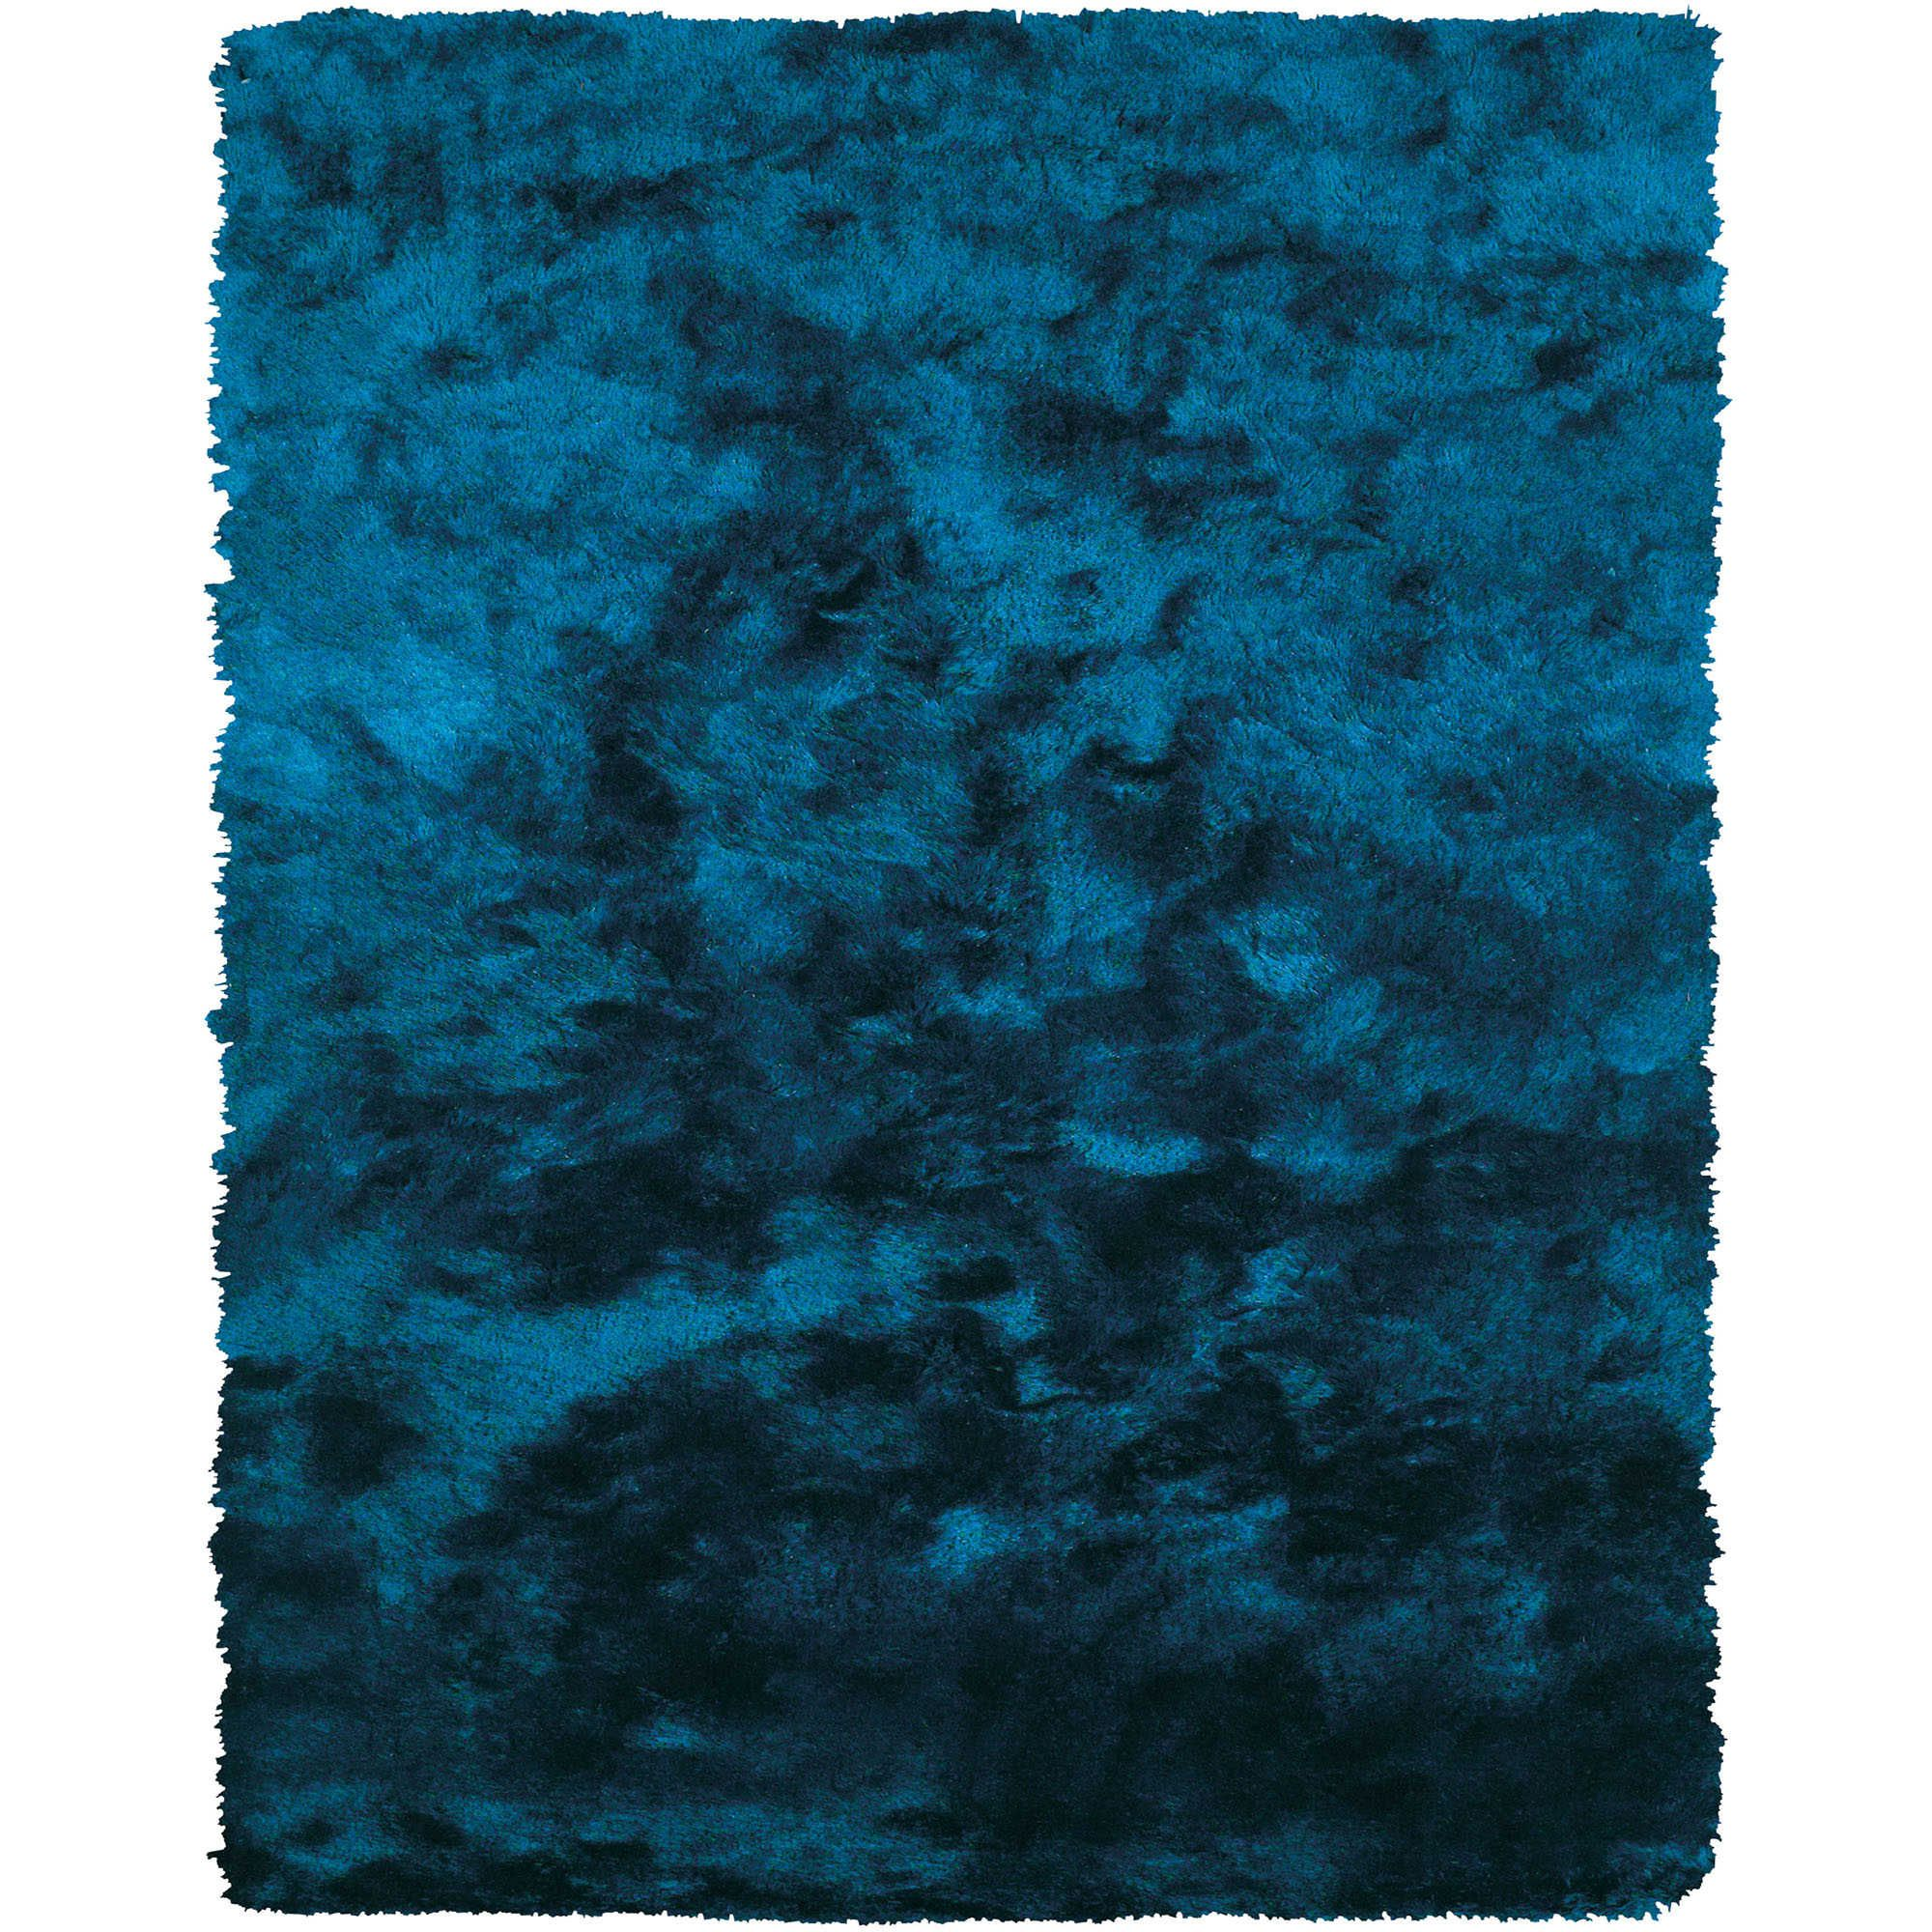 Feizy Isleta 2-Foot x 3-Foot 4-Inch Accent Rug in Teal